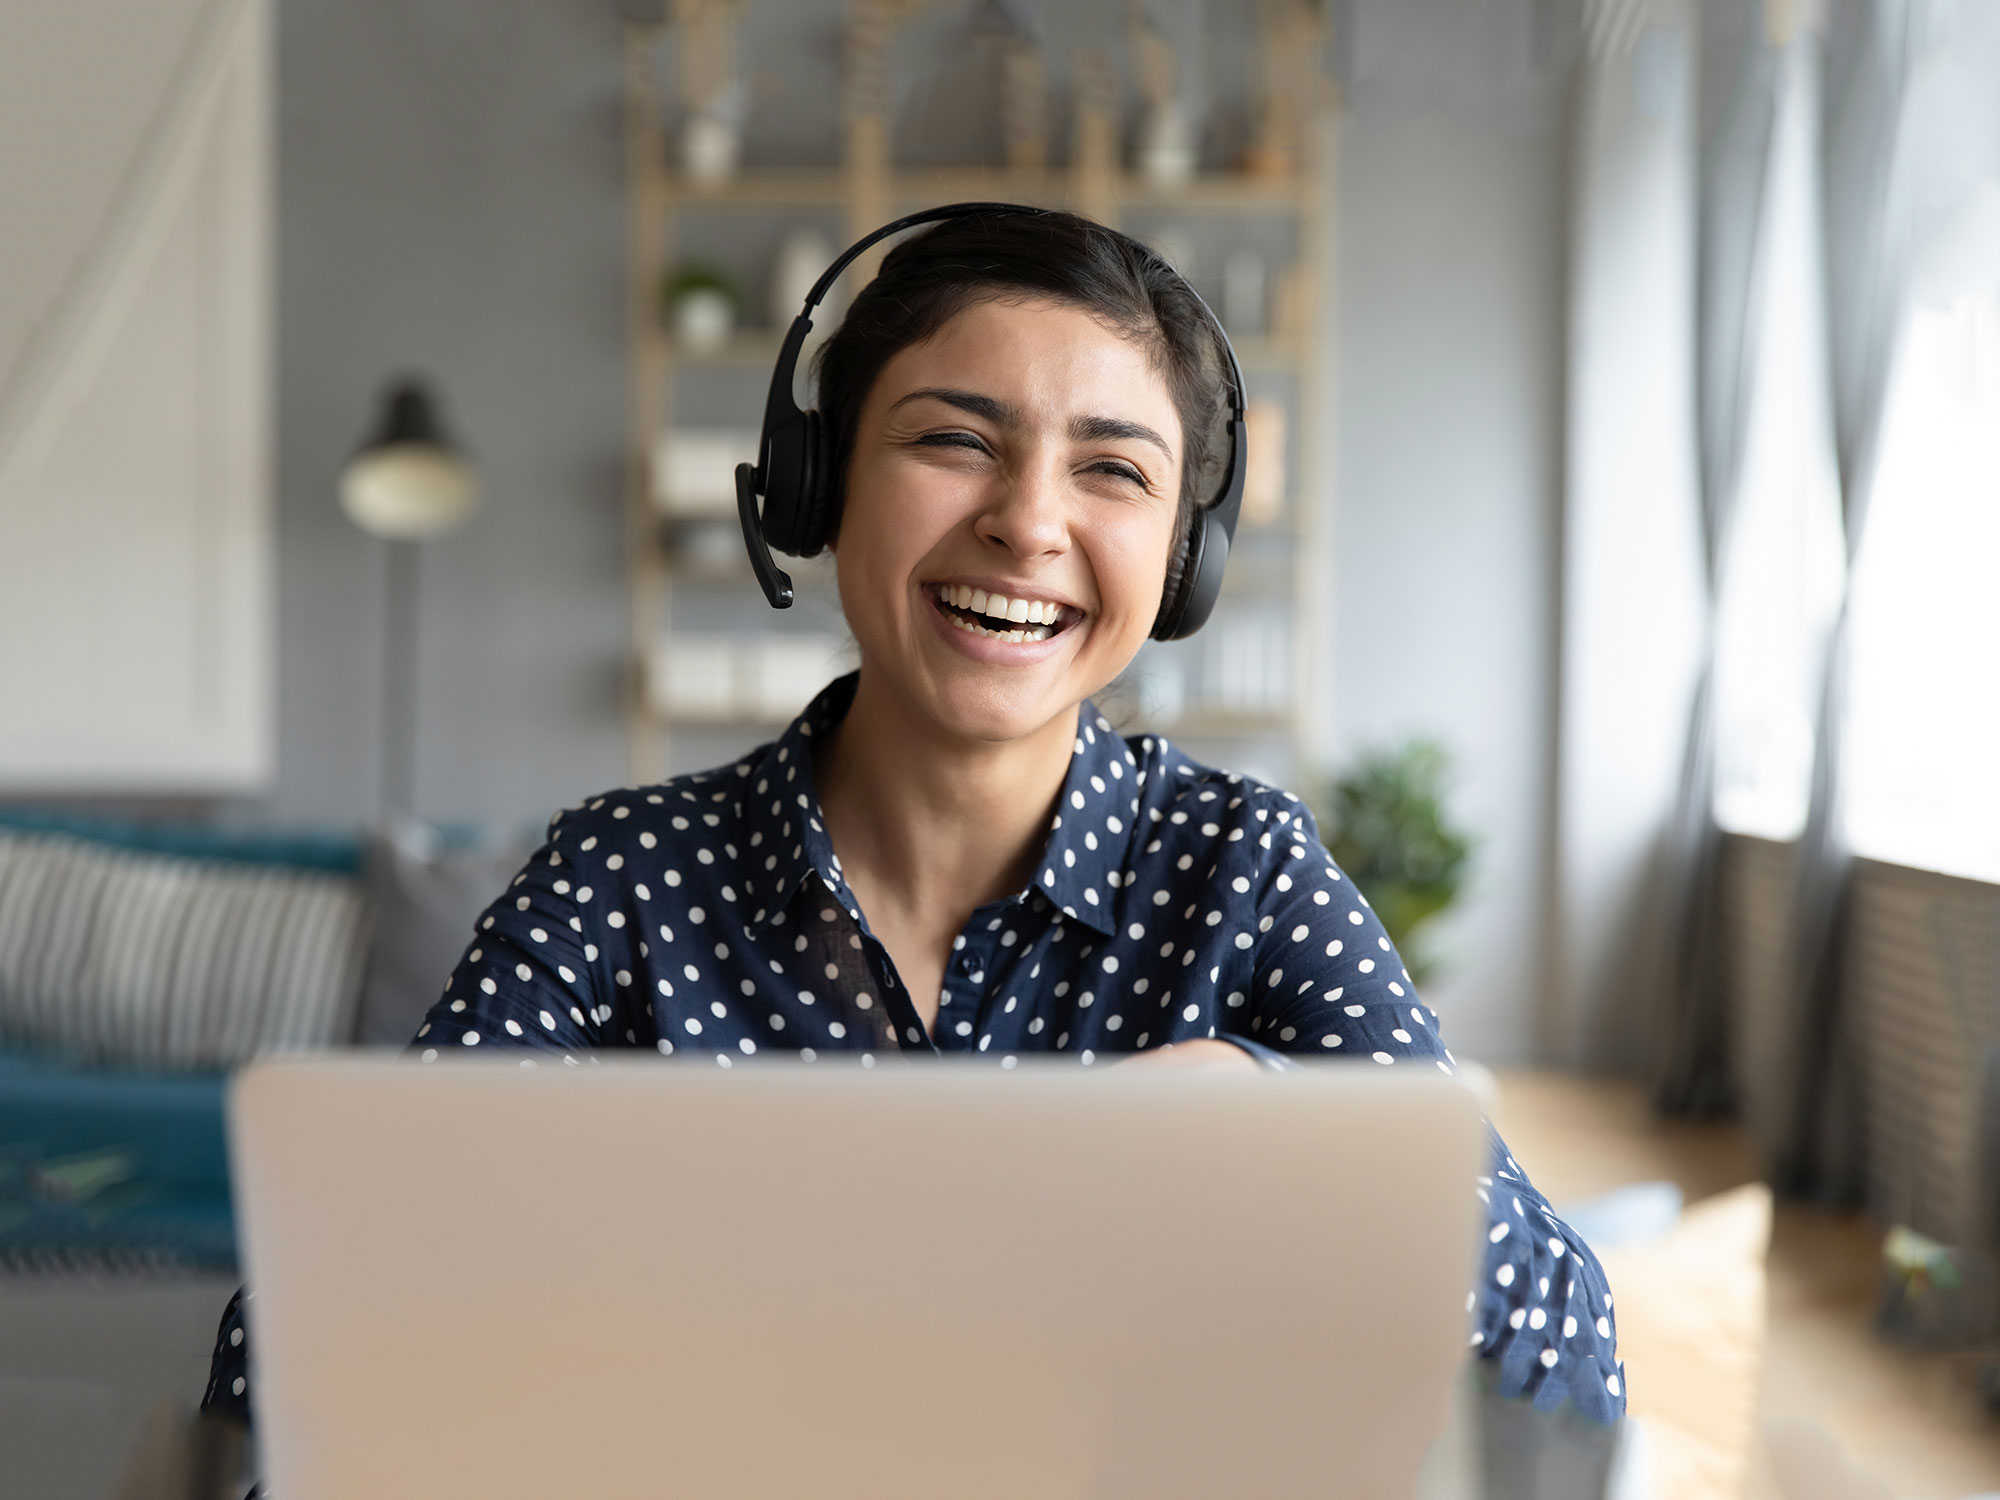 A woman in her mid-20s wearing a headset laughs; customer experience outsourcing